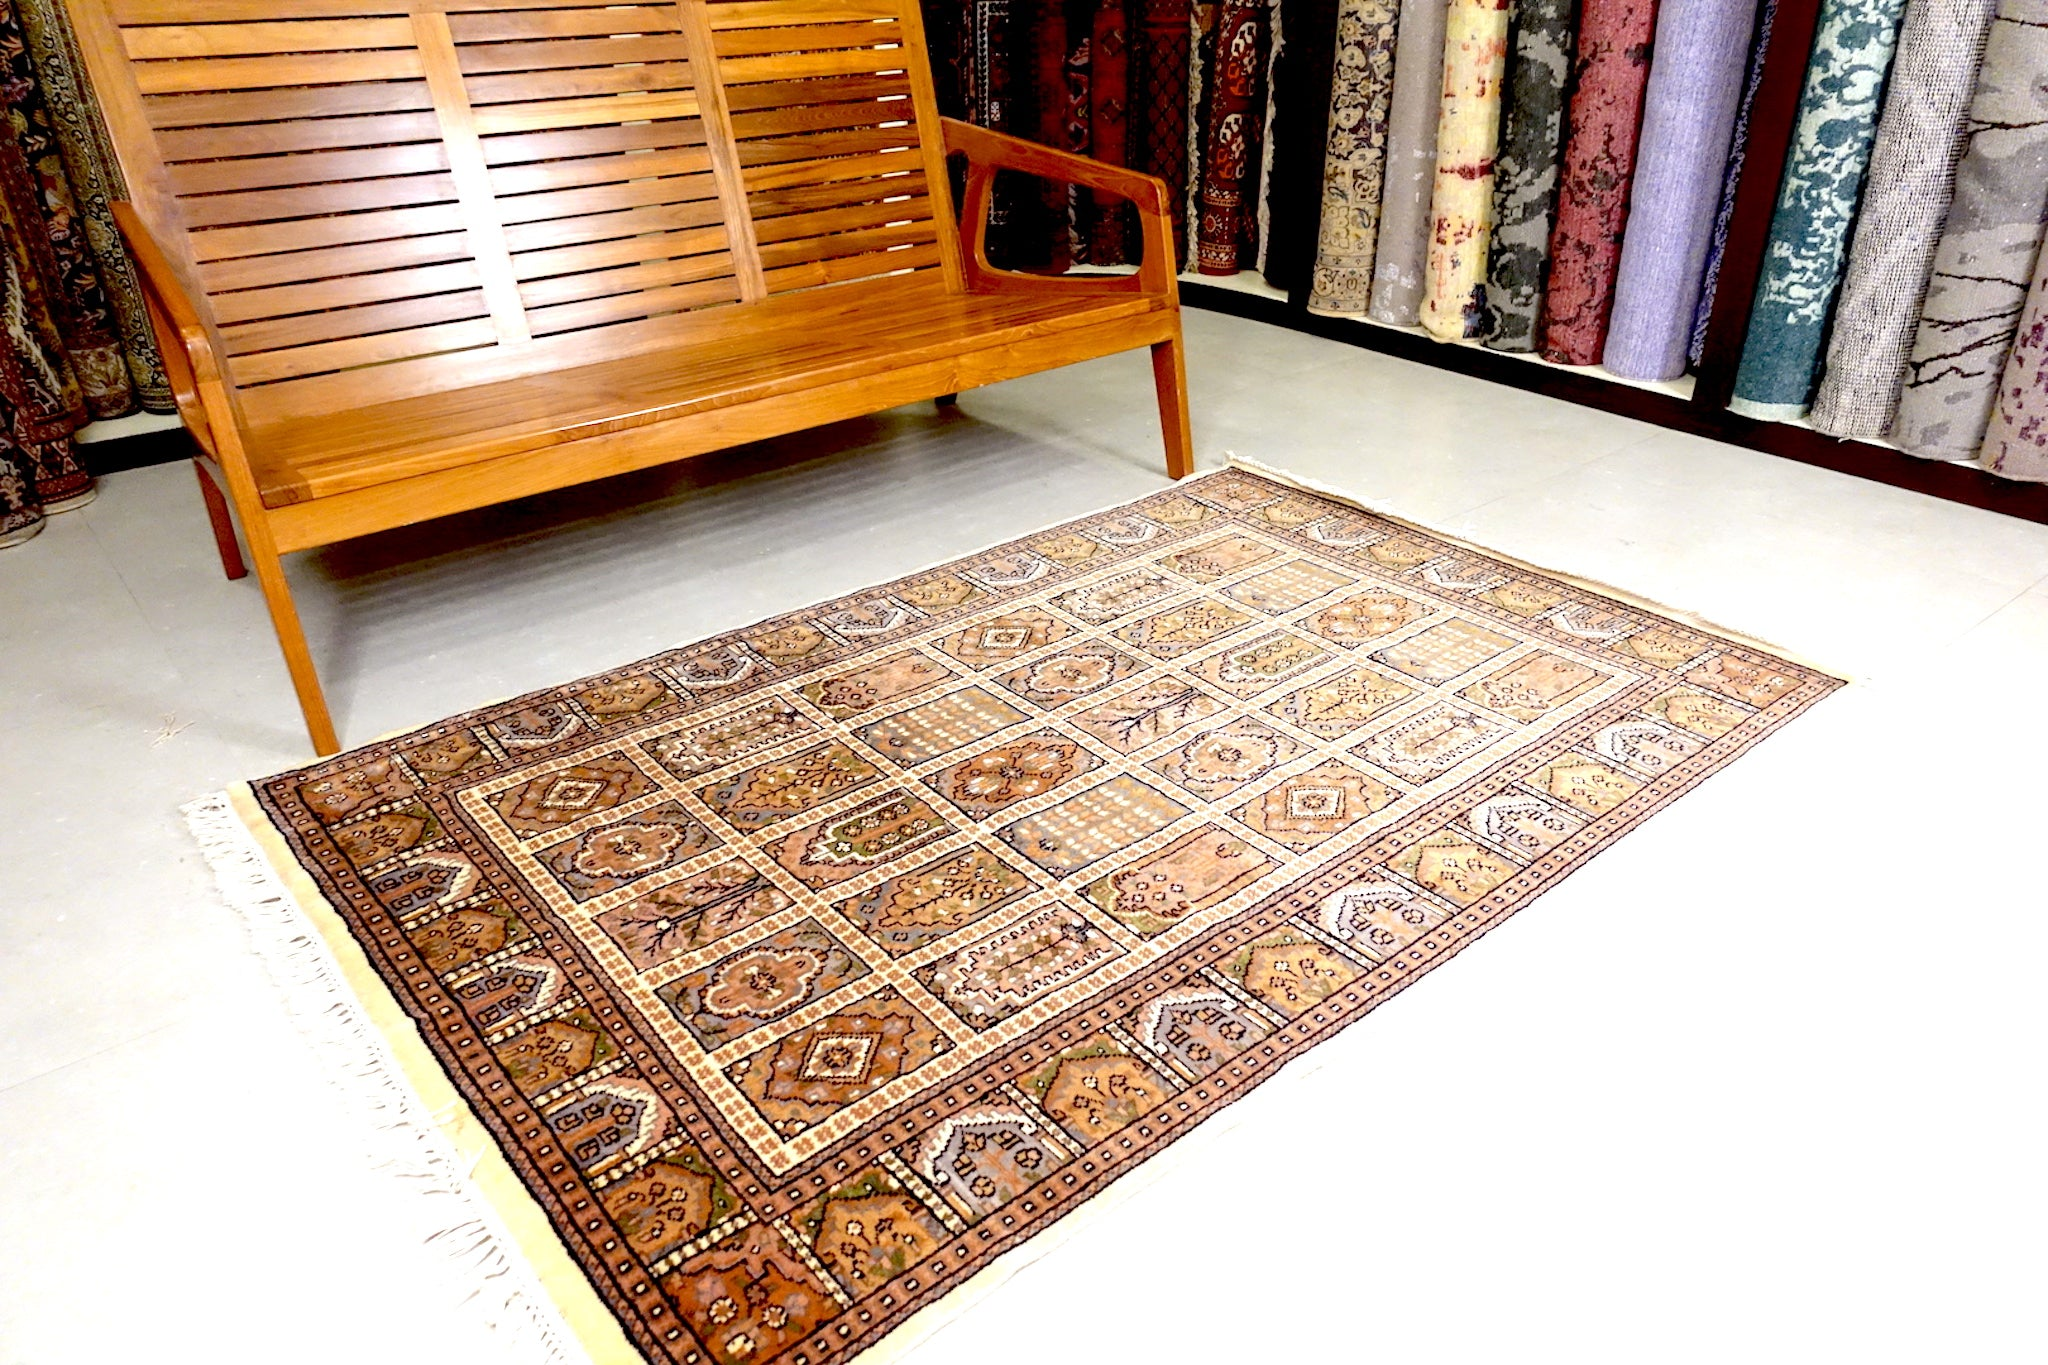 It is a 4 feet by 6 feet Indian wool rug. The colours used on the rug are beige,green and brown.